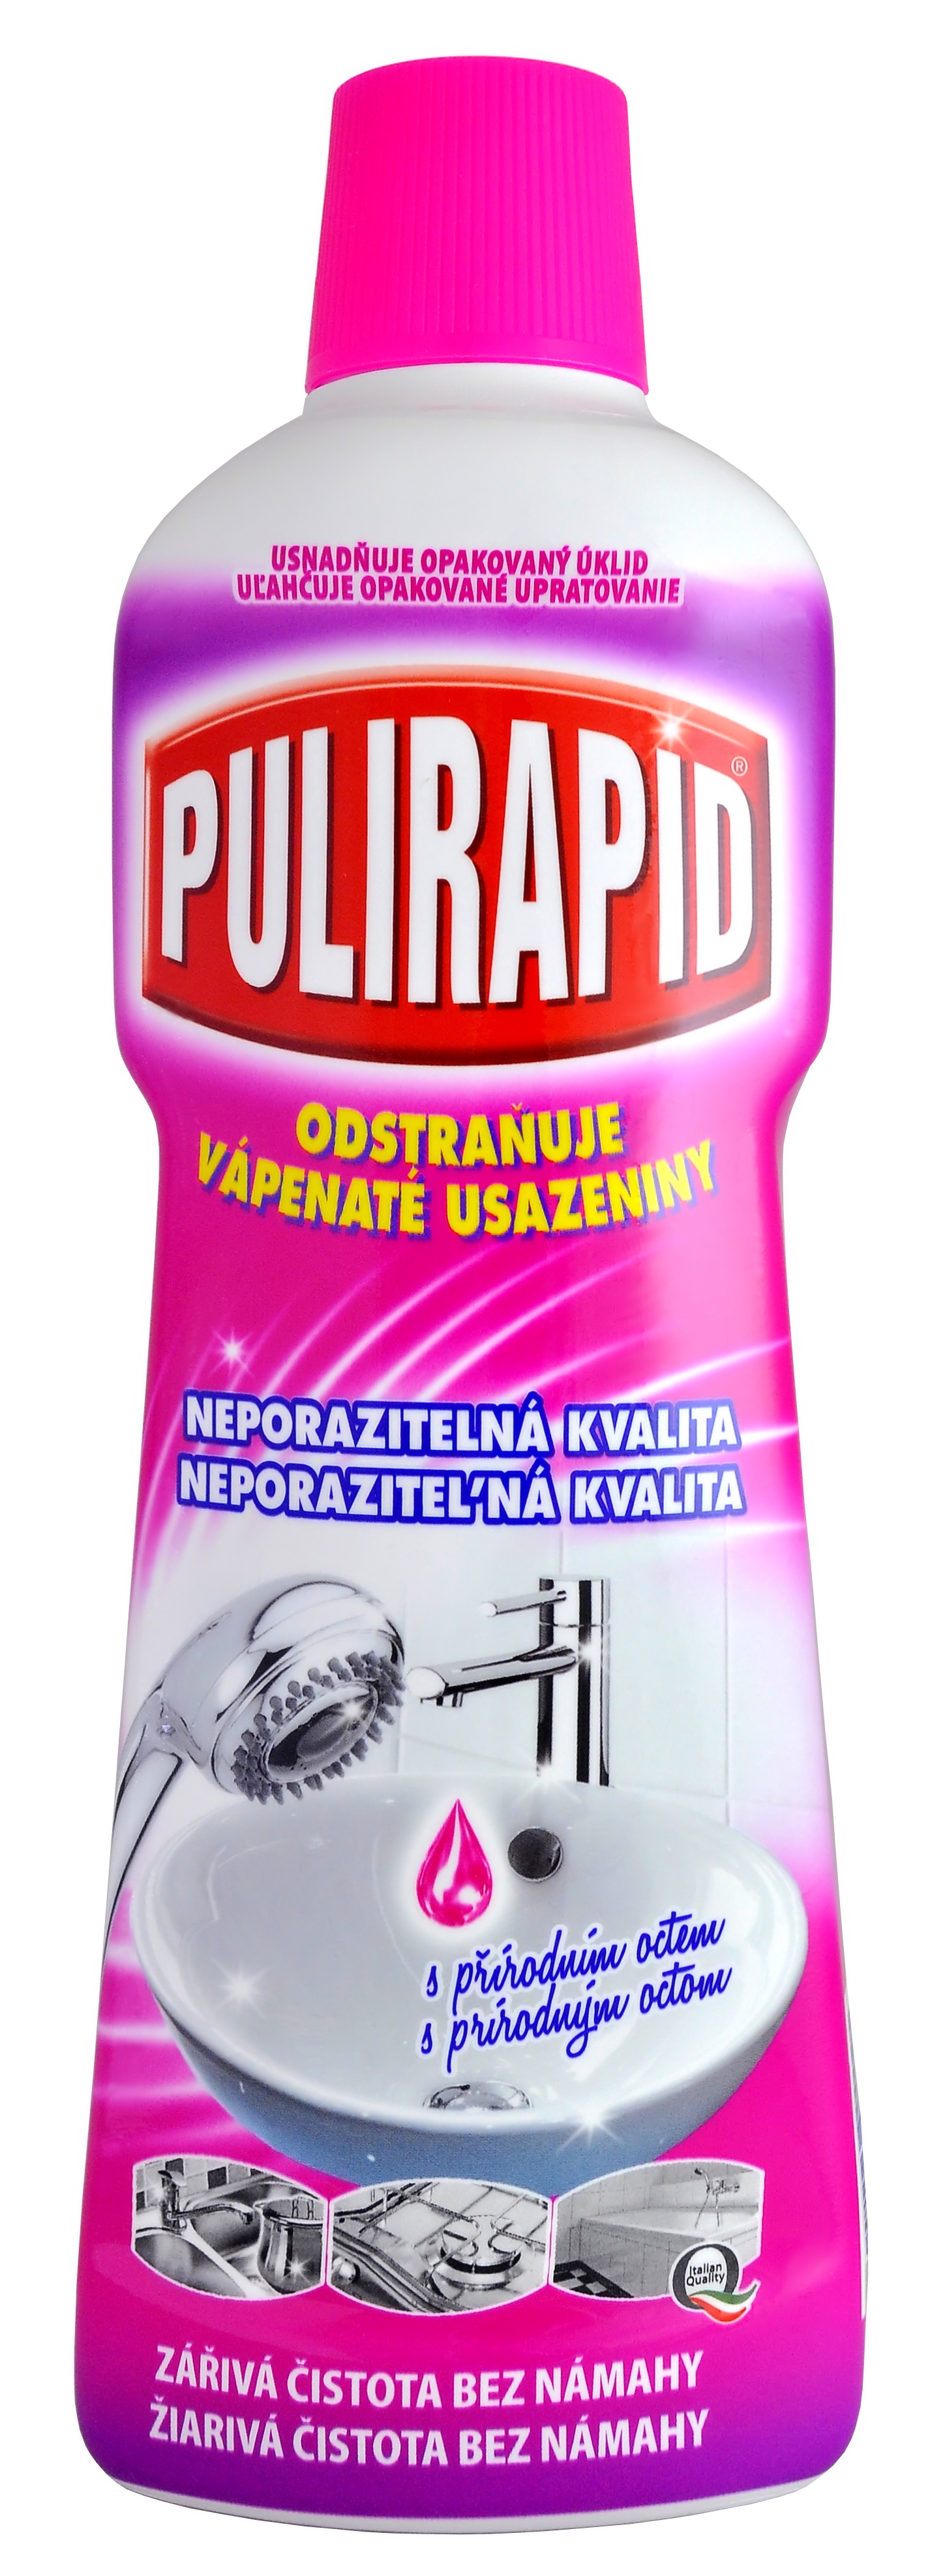 019 PULIRAPID ACETO 750 ml sleever